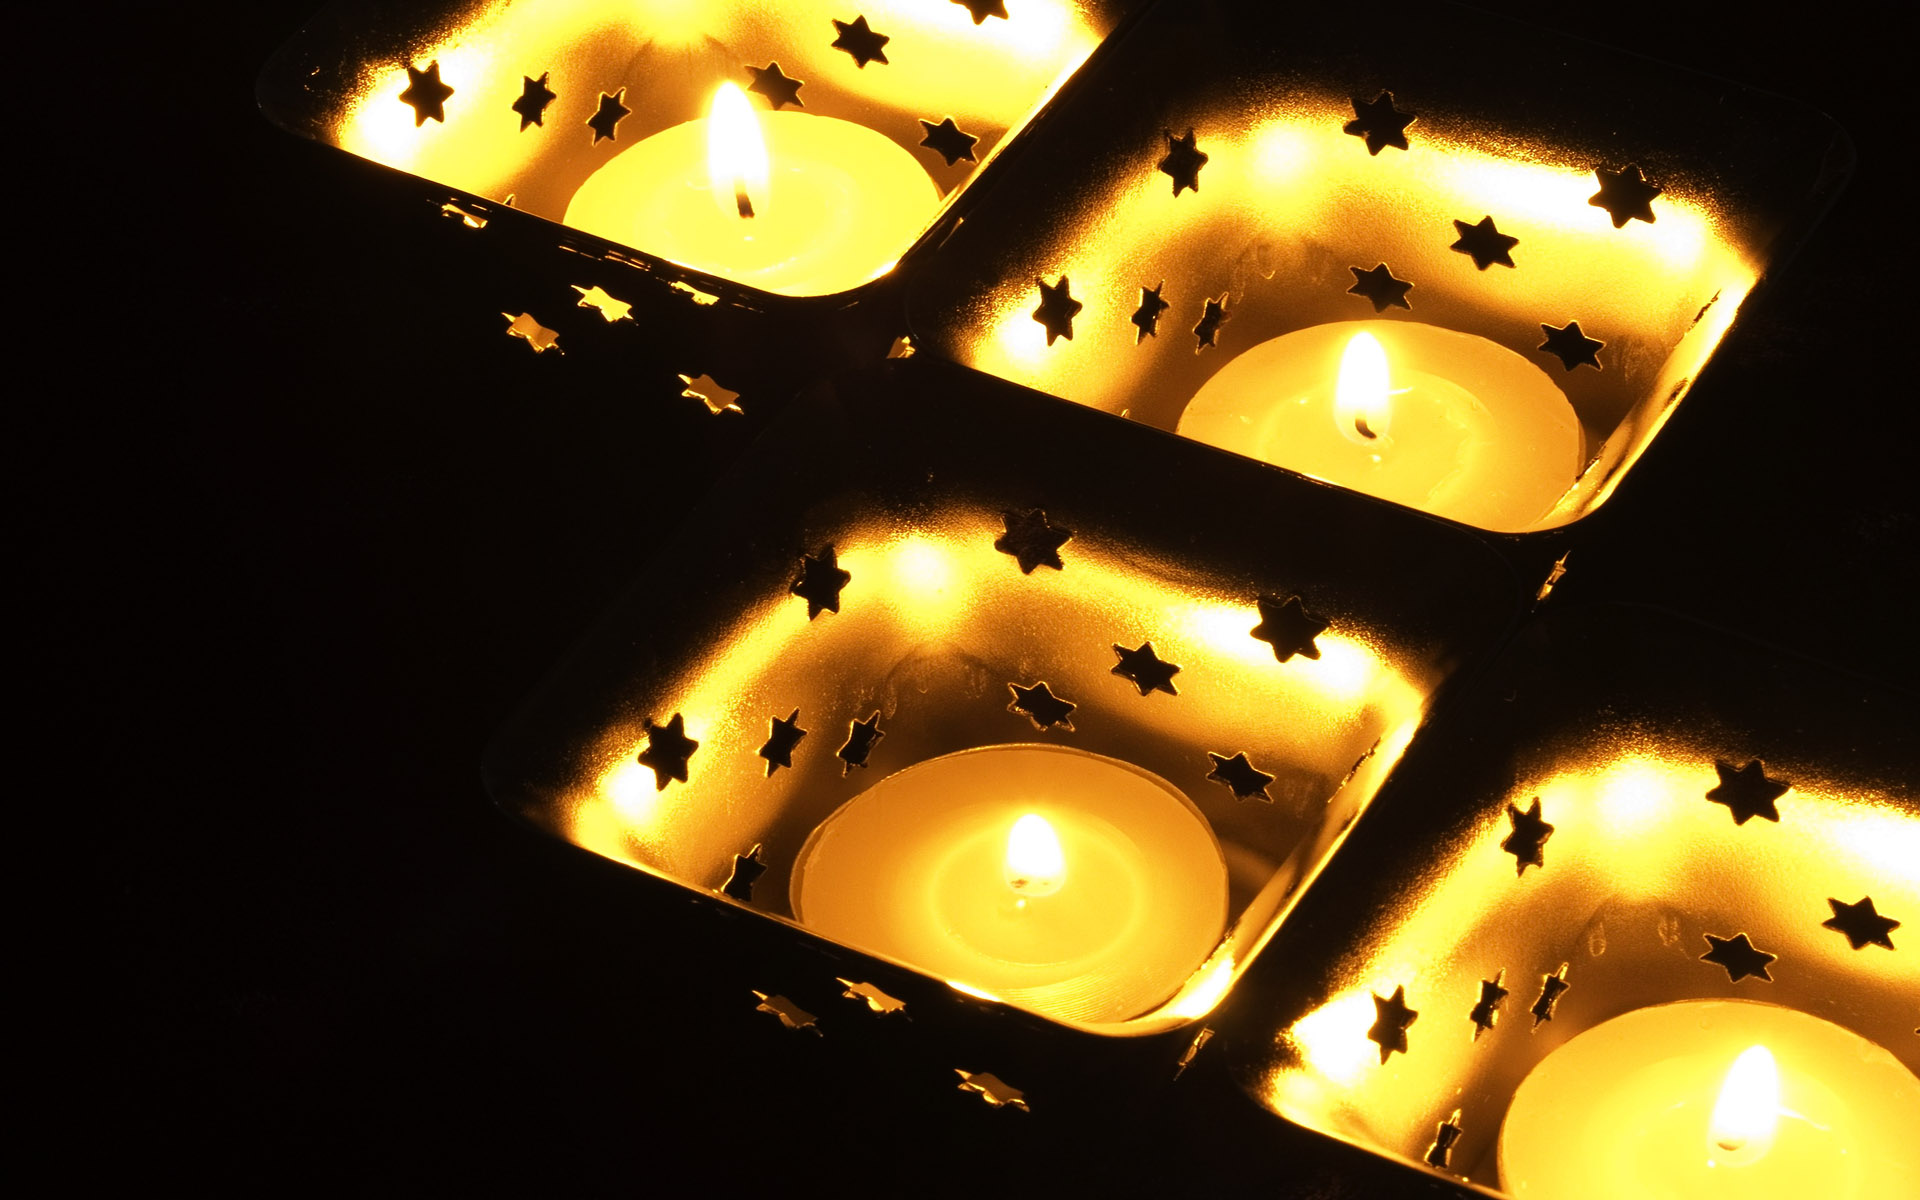 Candle wallpaper 6018